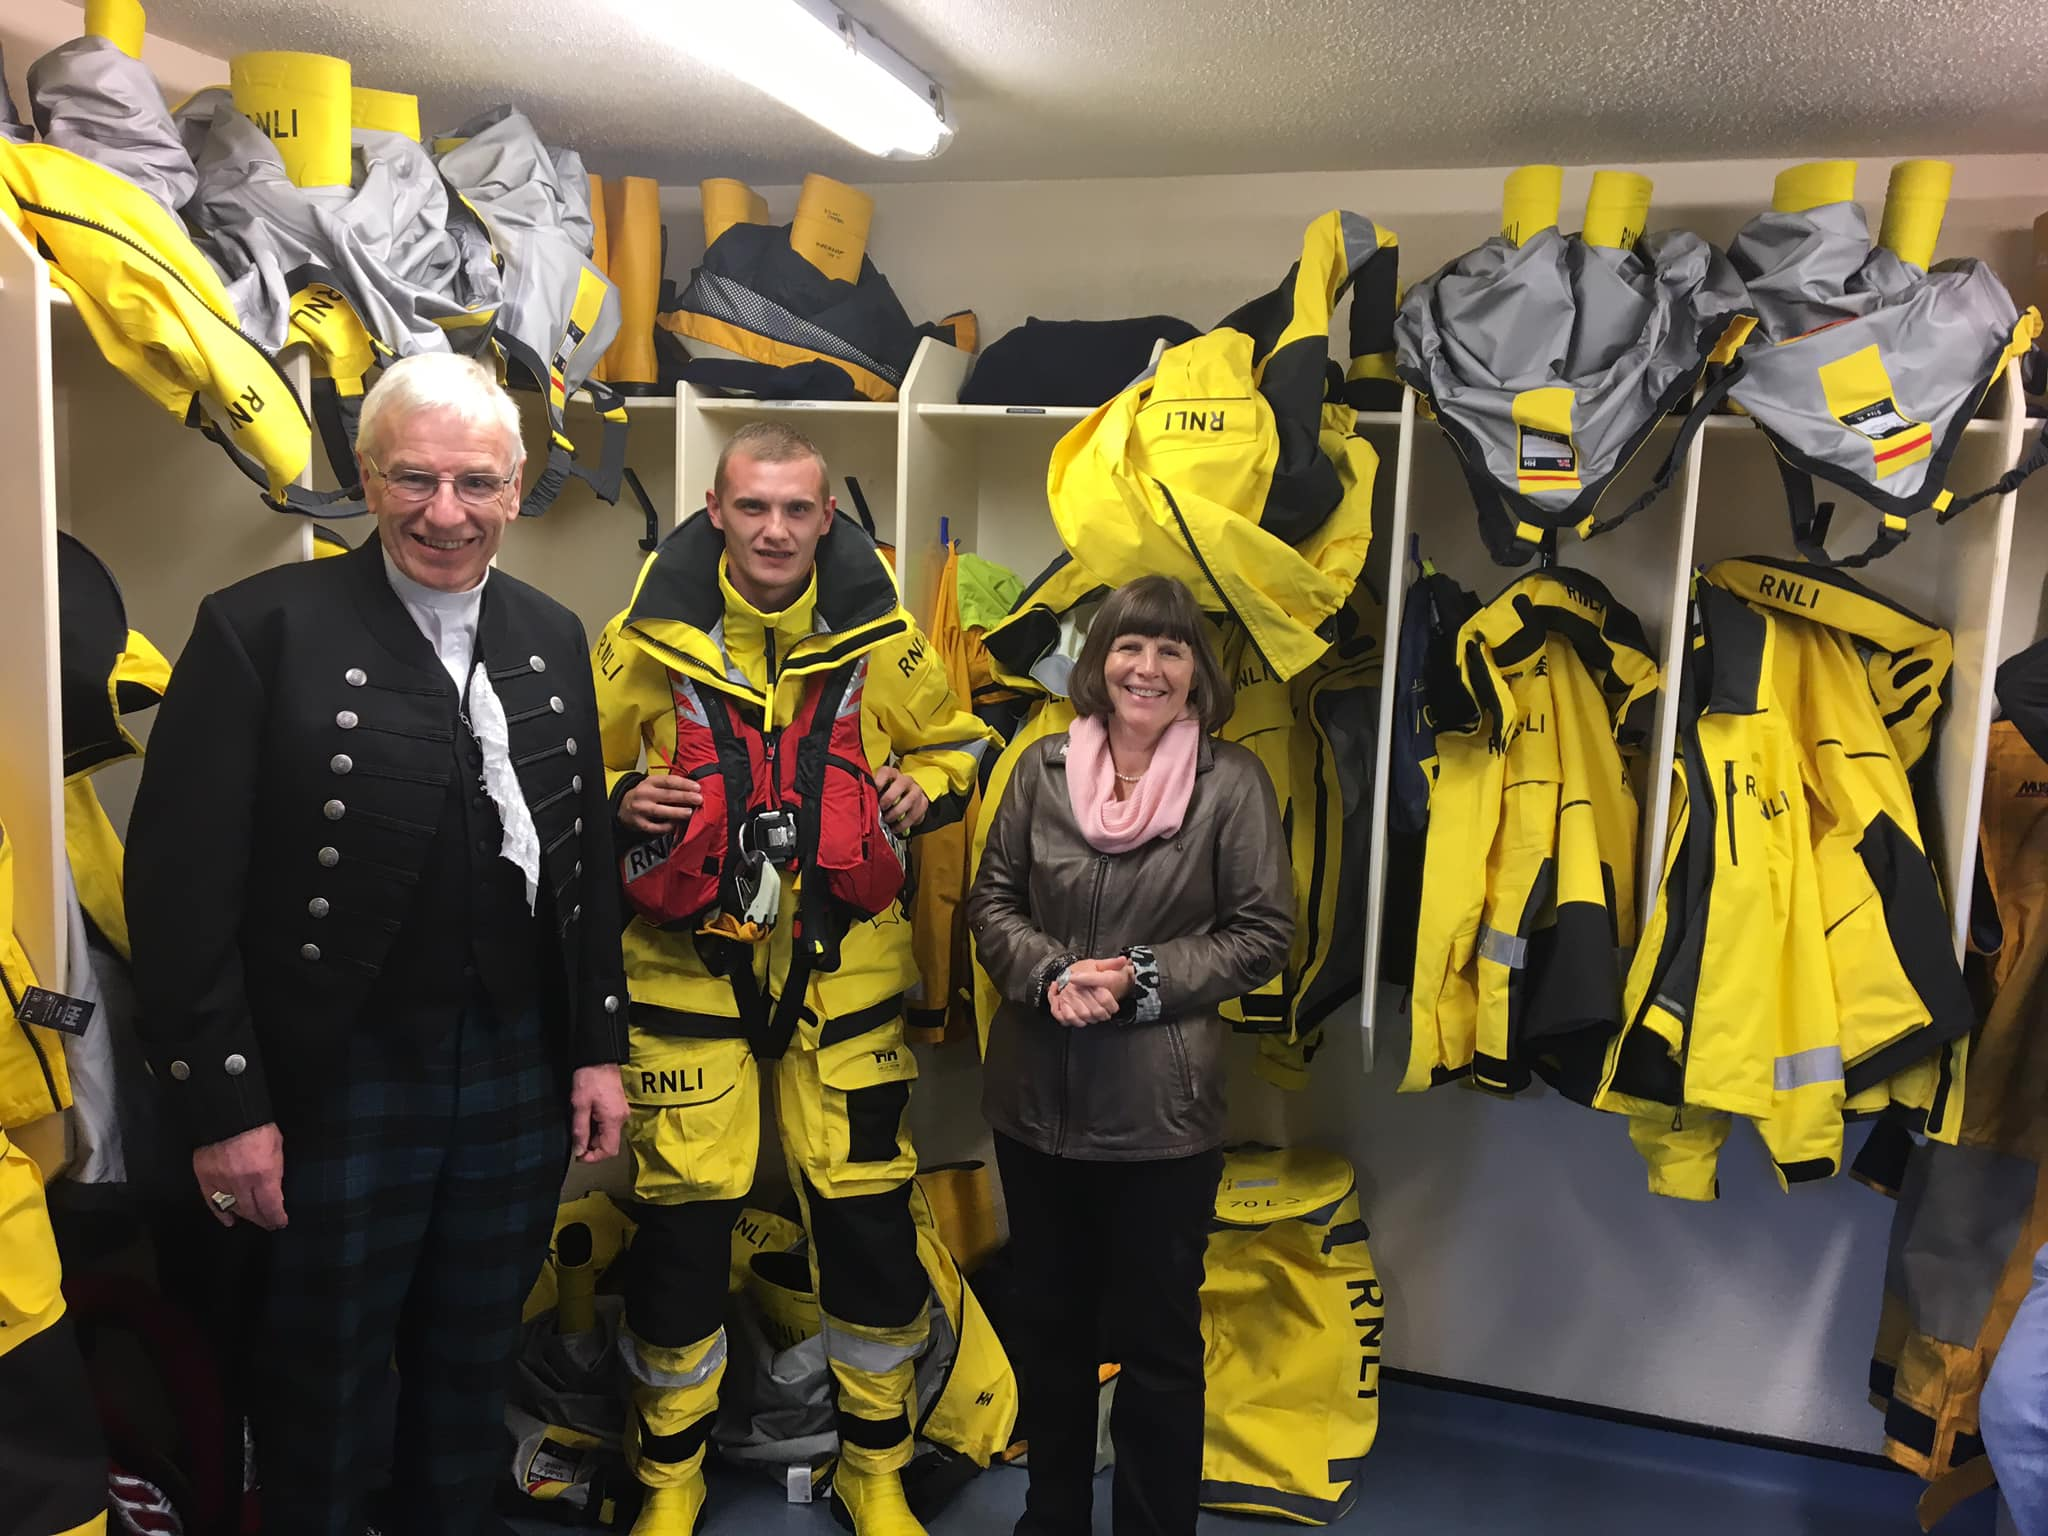 Rt Rev Colin Sinclair, and his wife Ruth, visited Wick Lifeboat Station, during the visit he met crew member Martin Gibson.